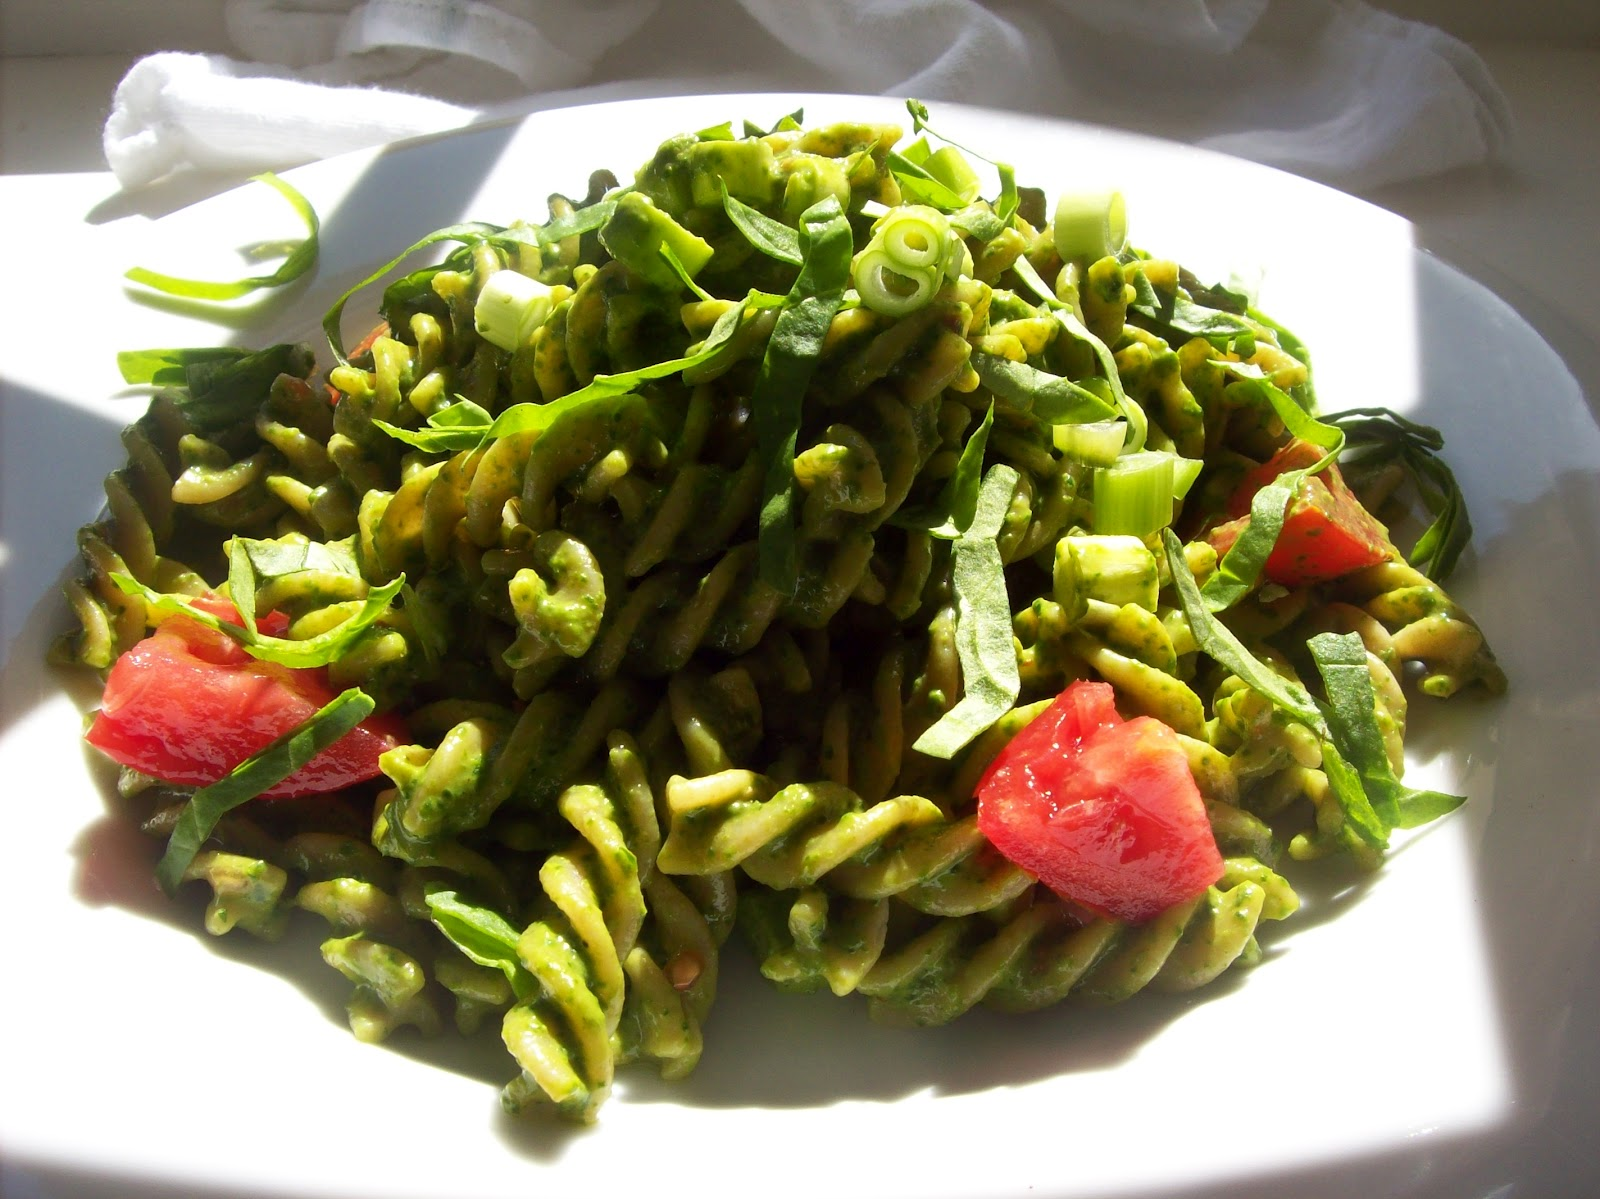 ... 1885™: whole wheat pasta with spicy spinach & peanut butter pesto